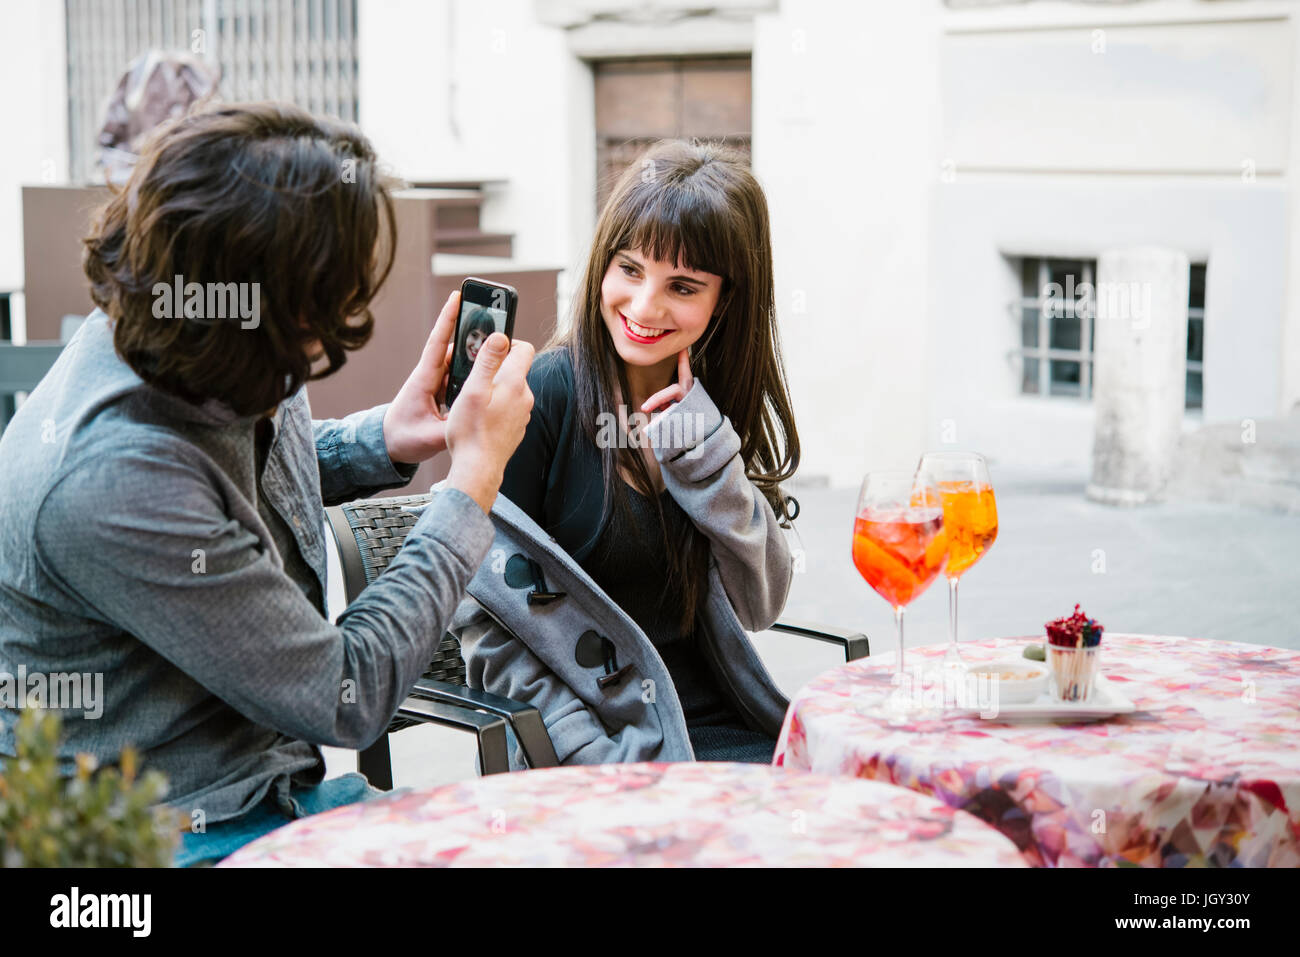 Young couple sitting outside cafe, man photographing woman, using smartphone - Stock Image